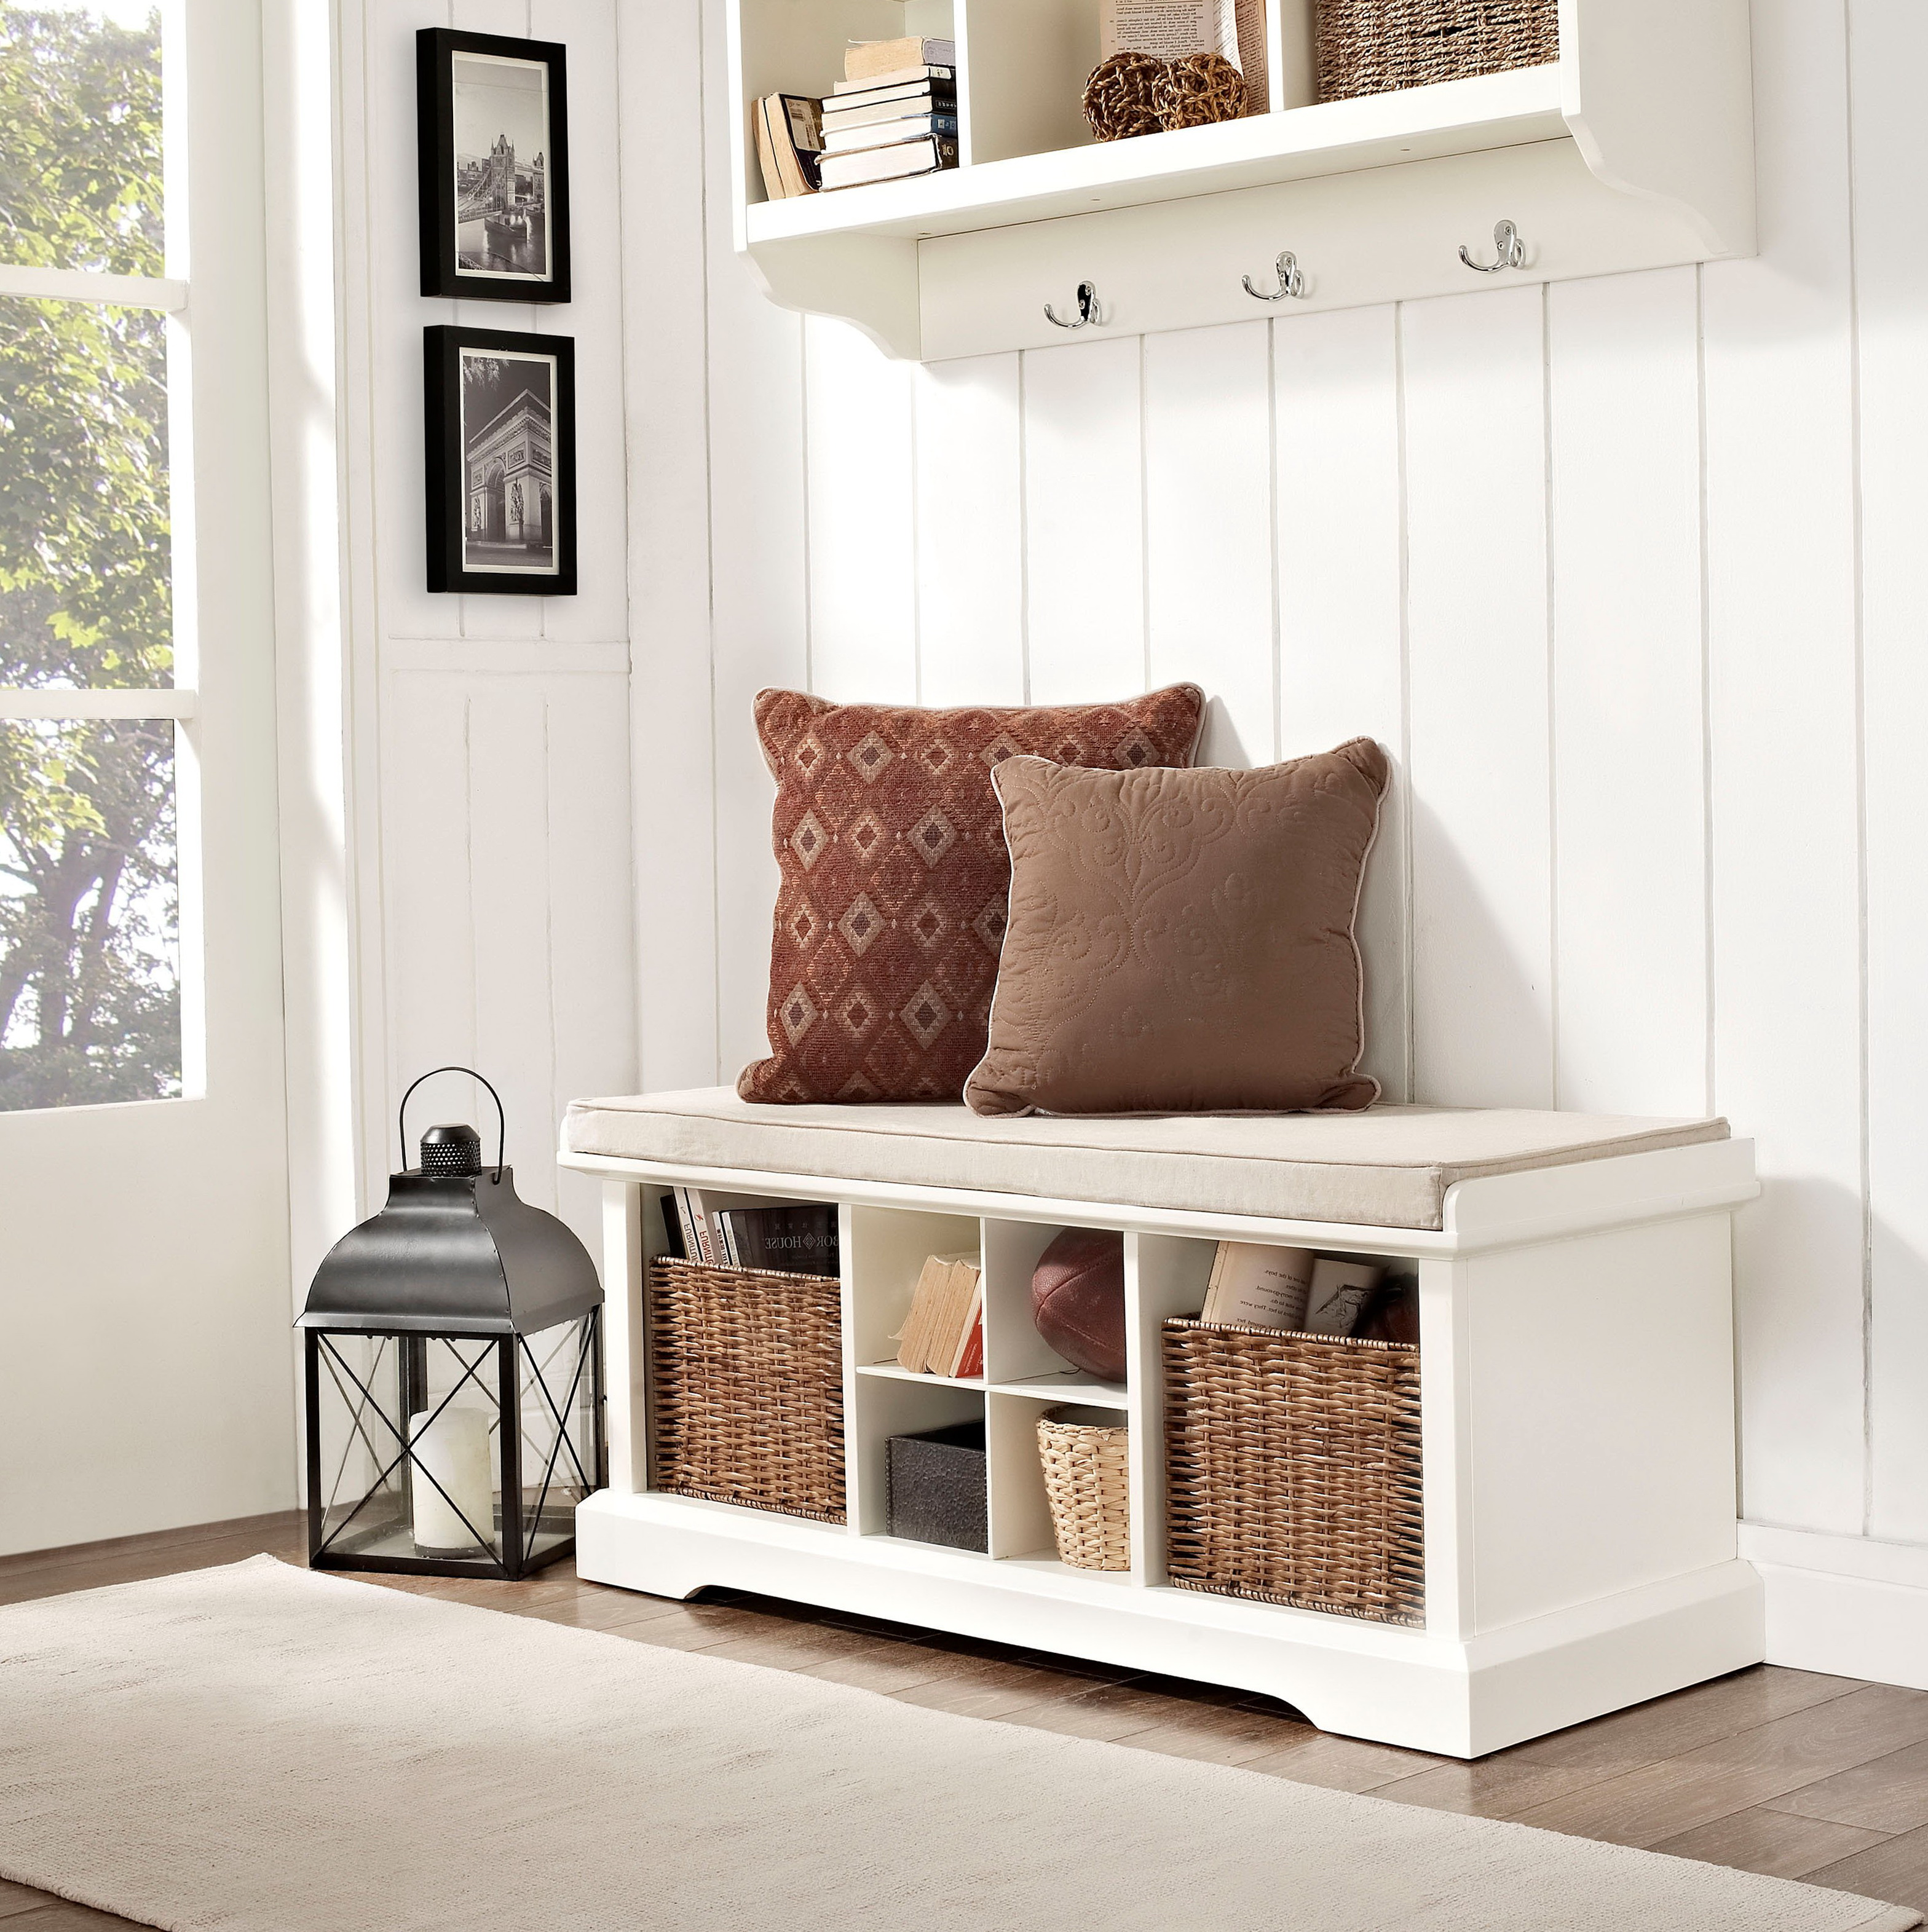 Entryway Storage Bench with Coat Rack | Coat and Boot Rack | Foyer Coat Rack Bench